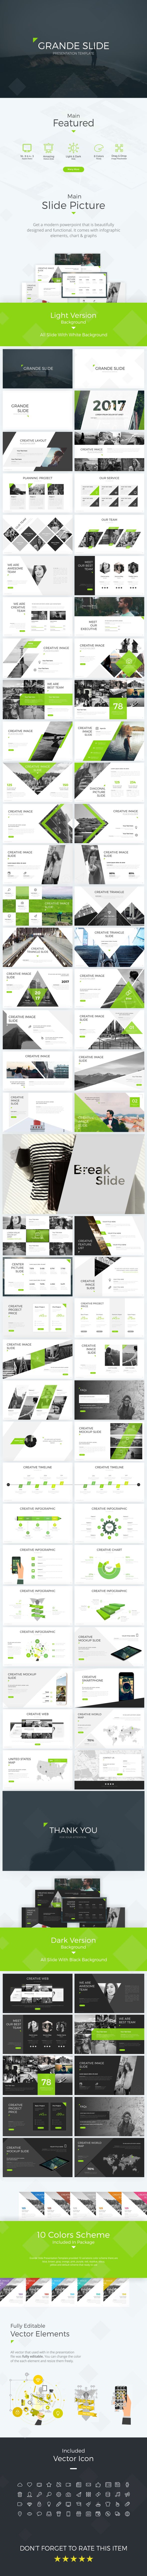 Grande - PowerPoint Presentation Template - 65+ Multipurpose Slides, Clean, Unique, Creative and Simple